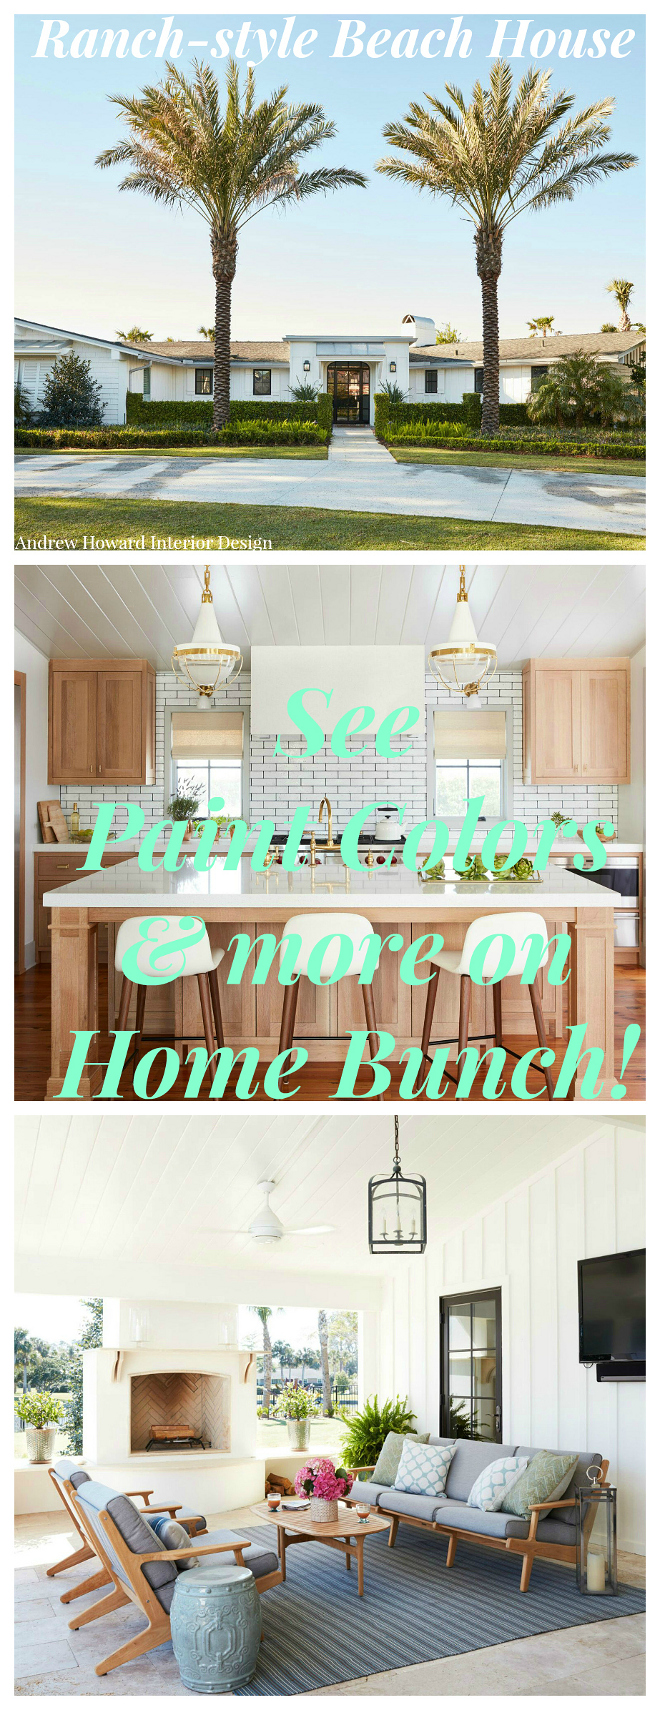 Ranch-style Beach House Interior Ideas #RanchstyleBeachHouse #InteriorIdeas on Home Bunch